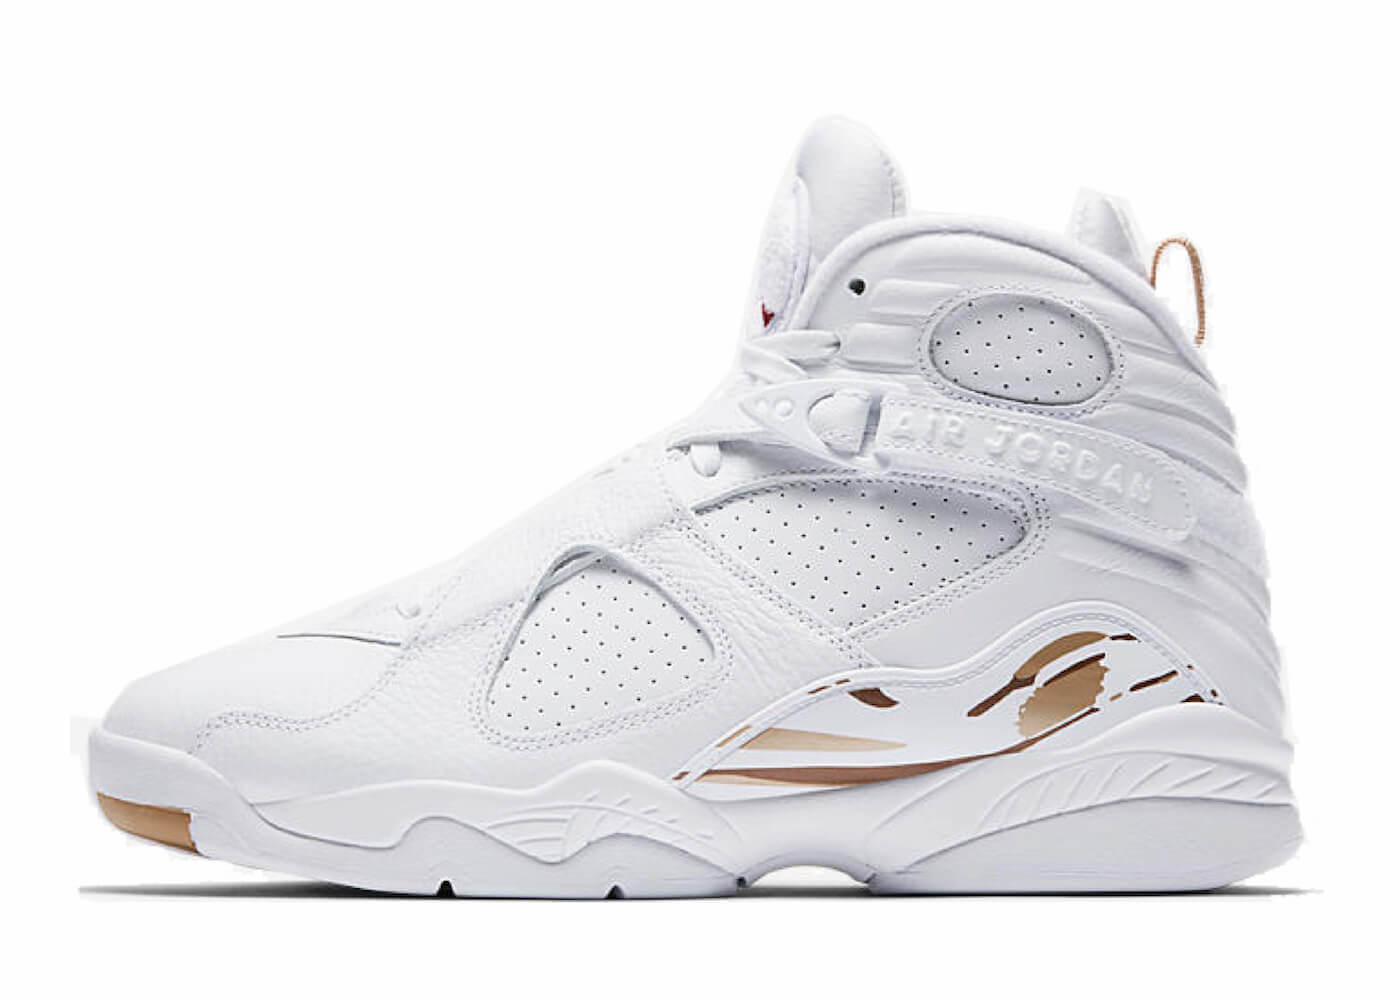 JORDAN 8 RETRO OVO WHITEの写真